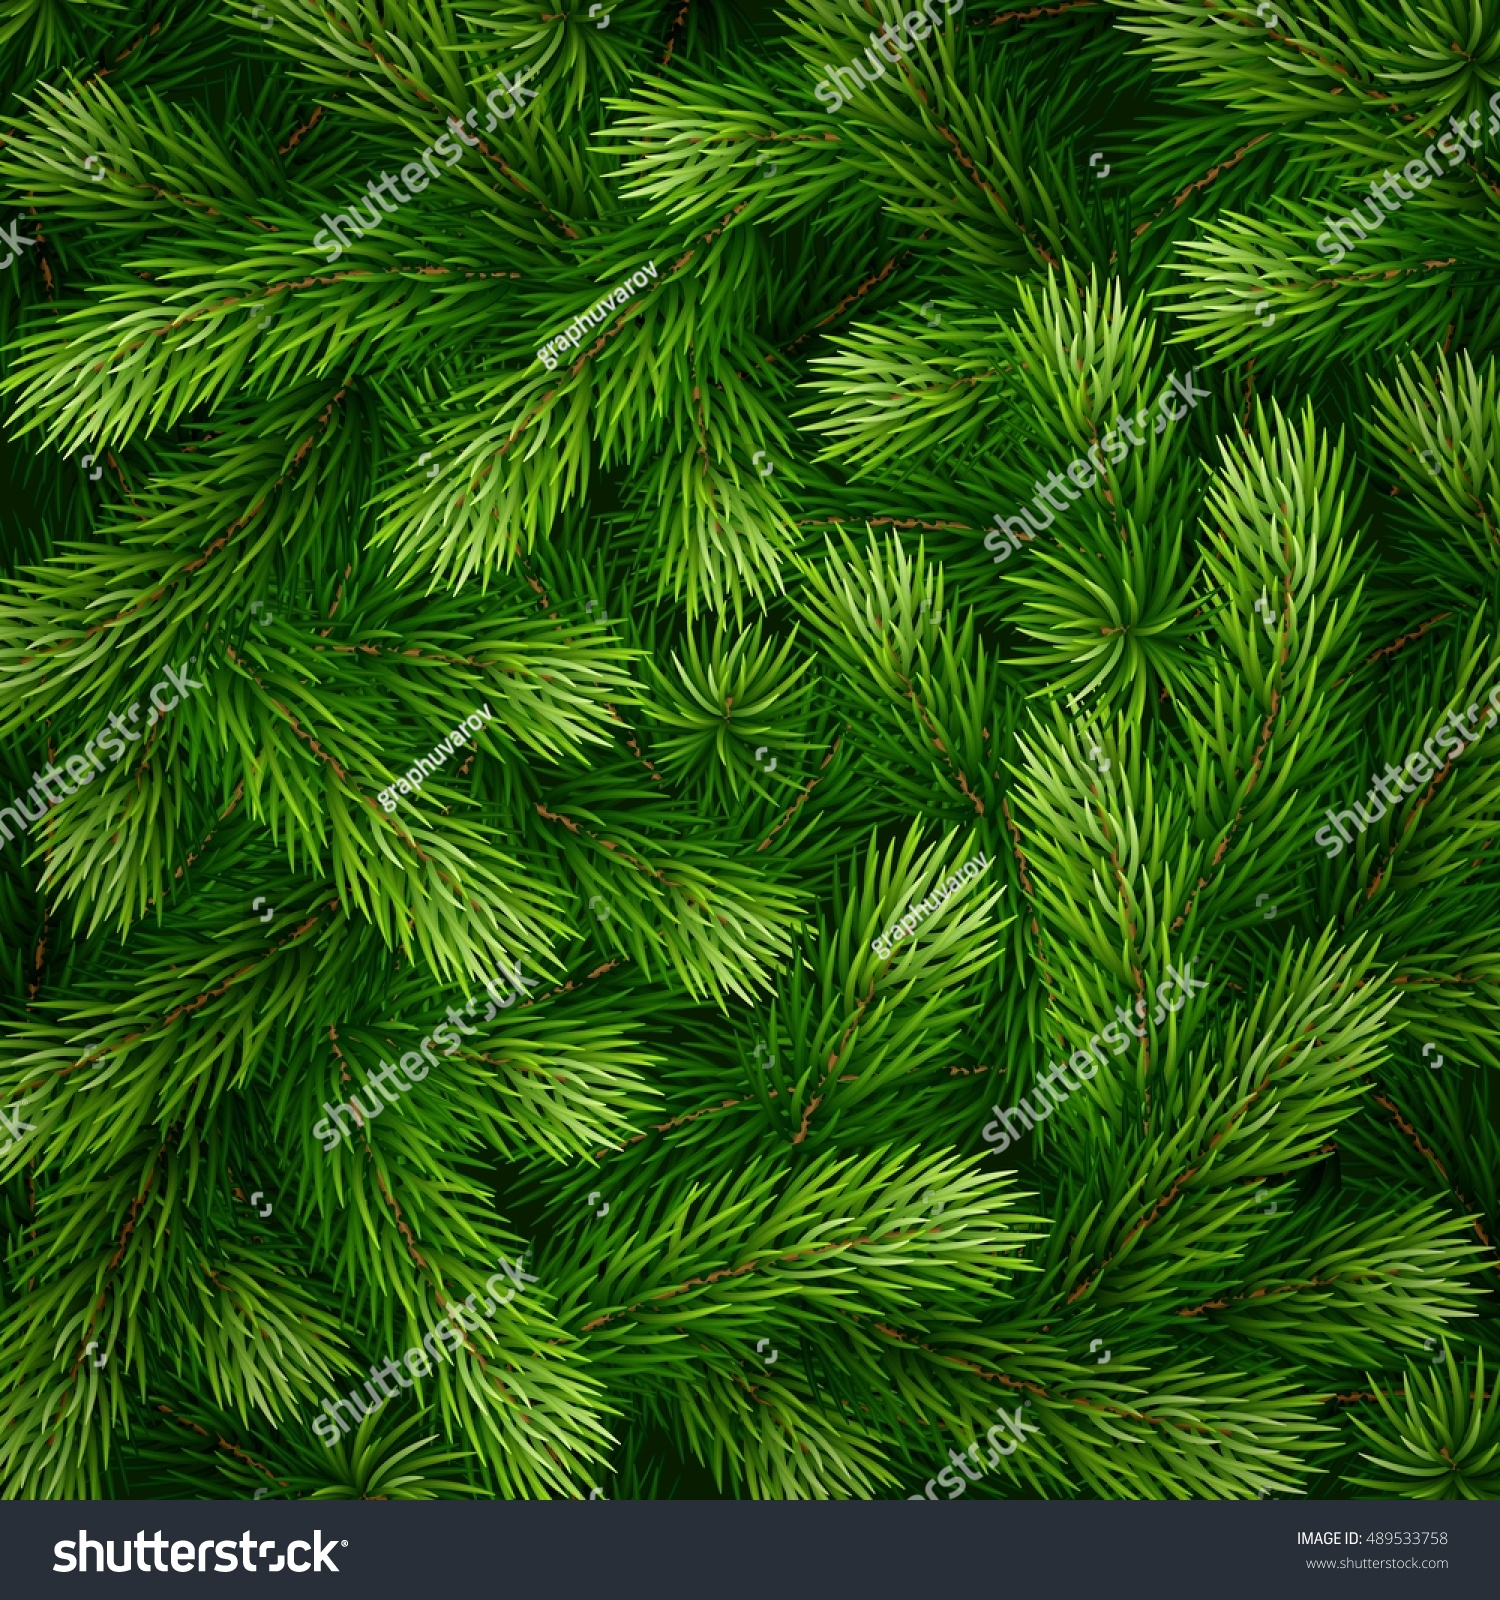 detailed christmas tree branches background - Christmas Tree Branches